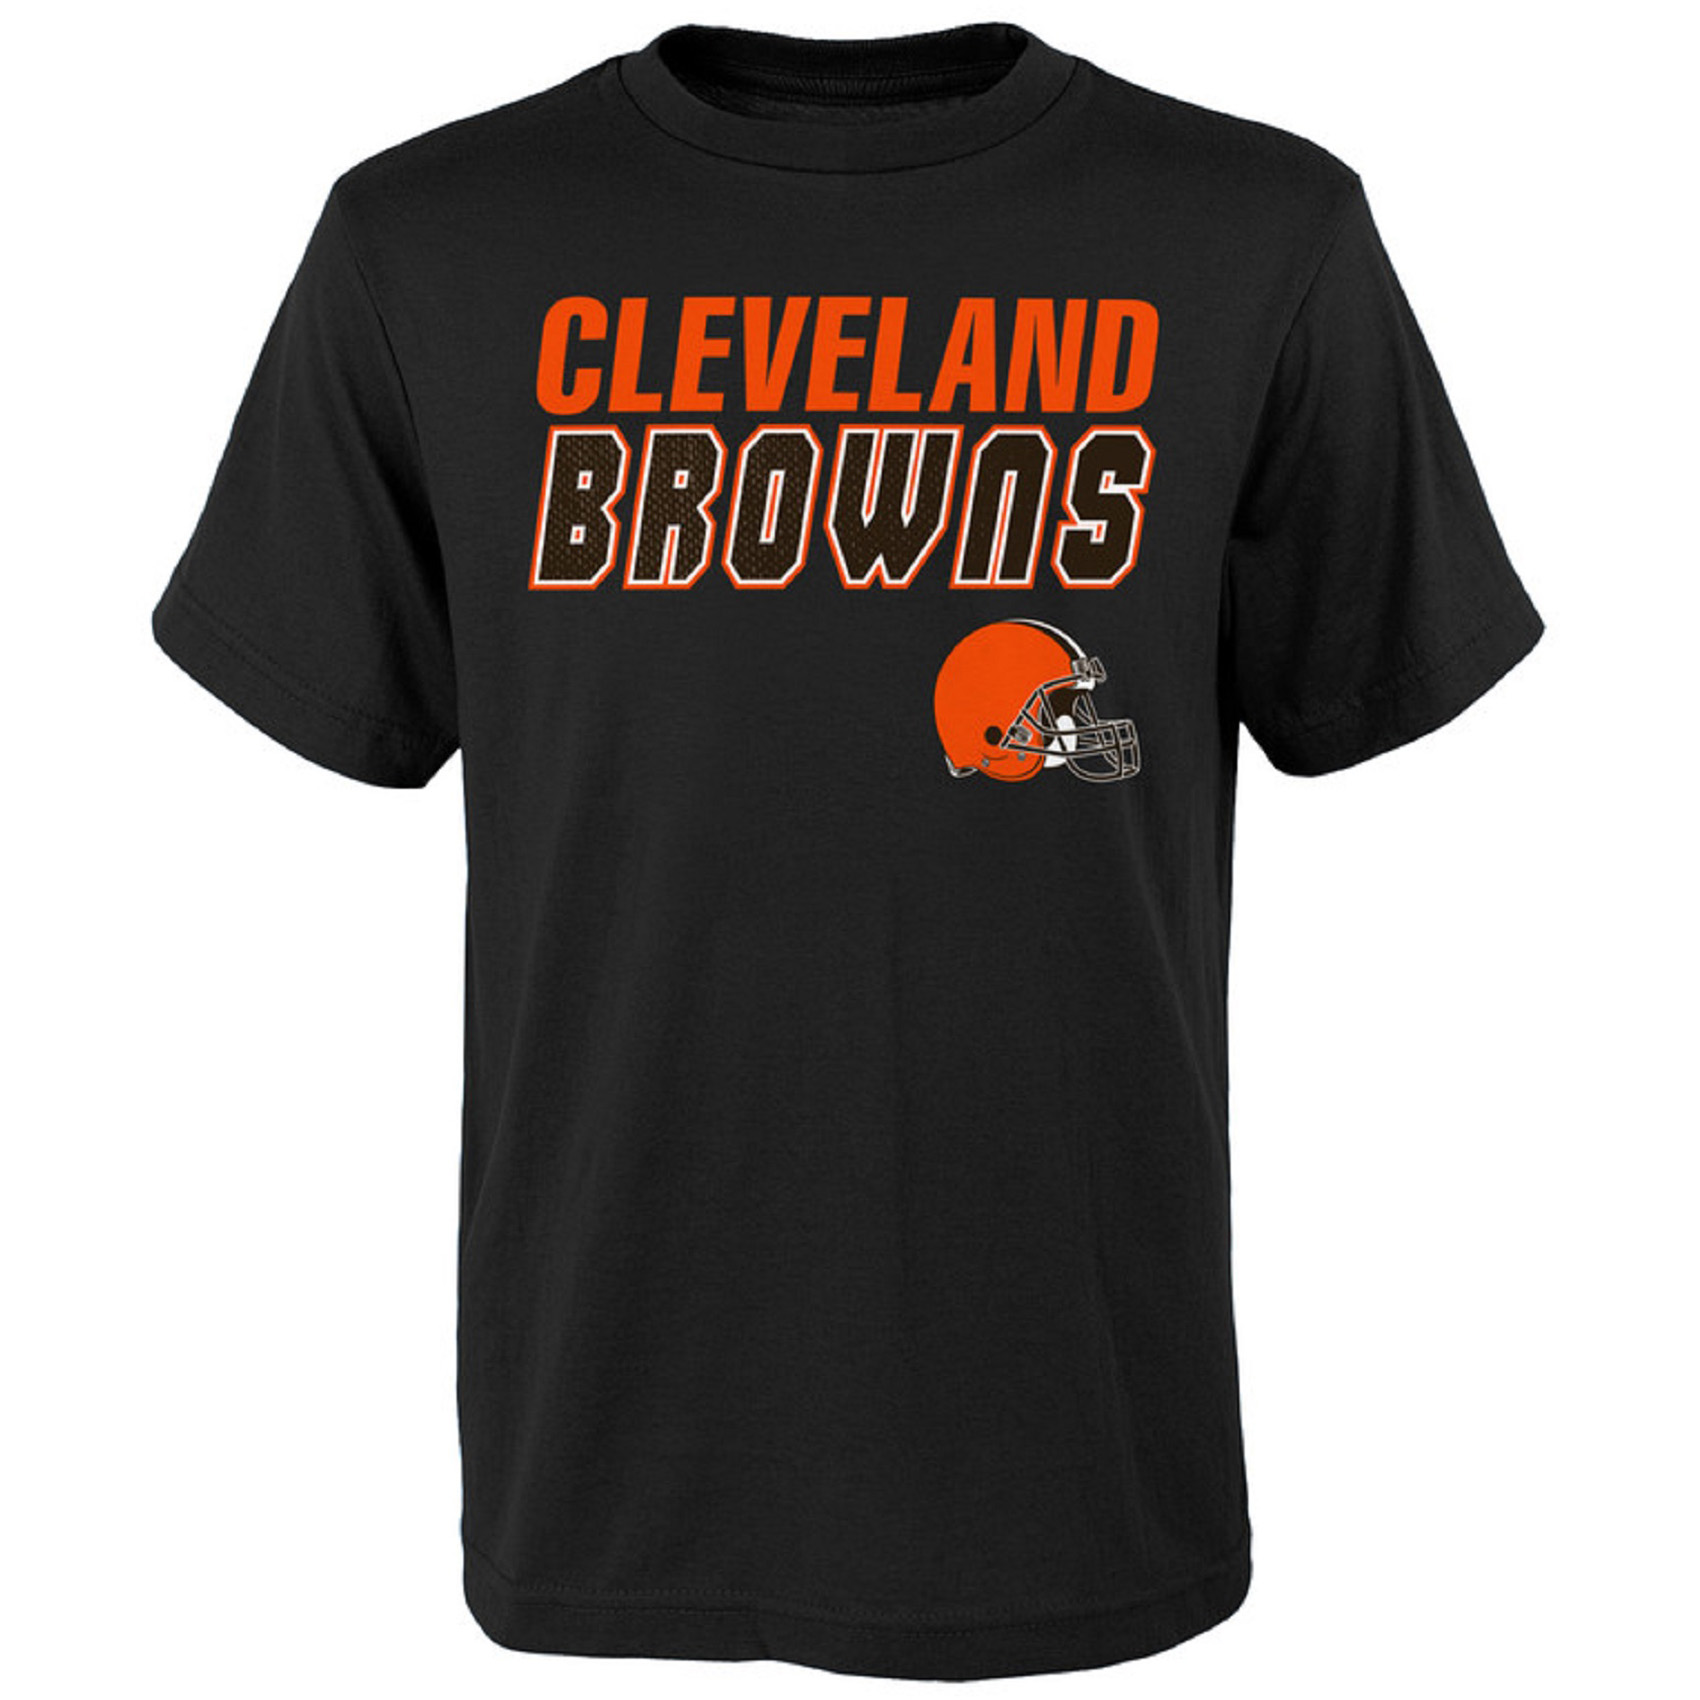 Youth Black Cleveland Browns Outline T-Shirt